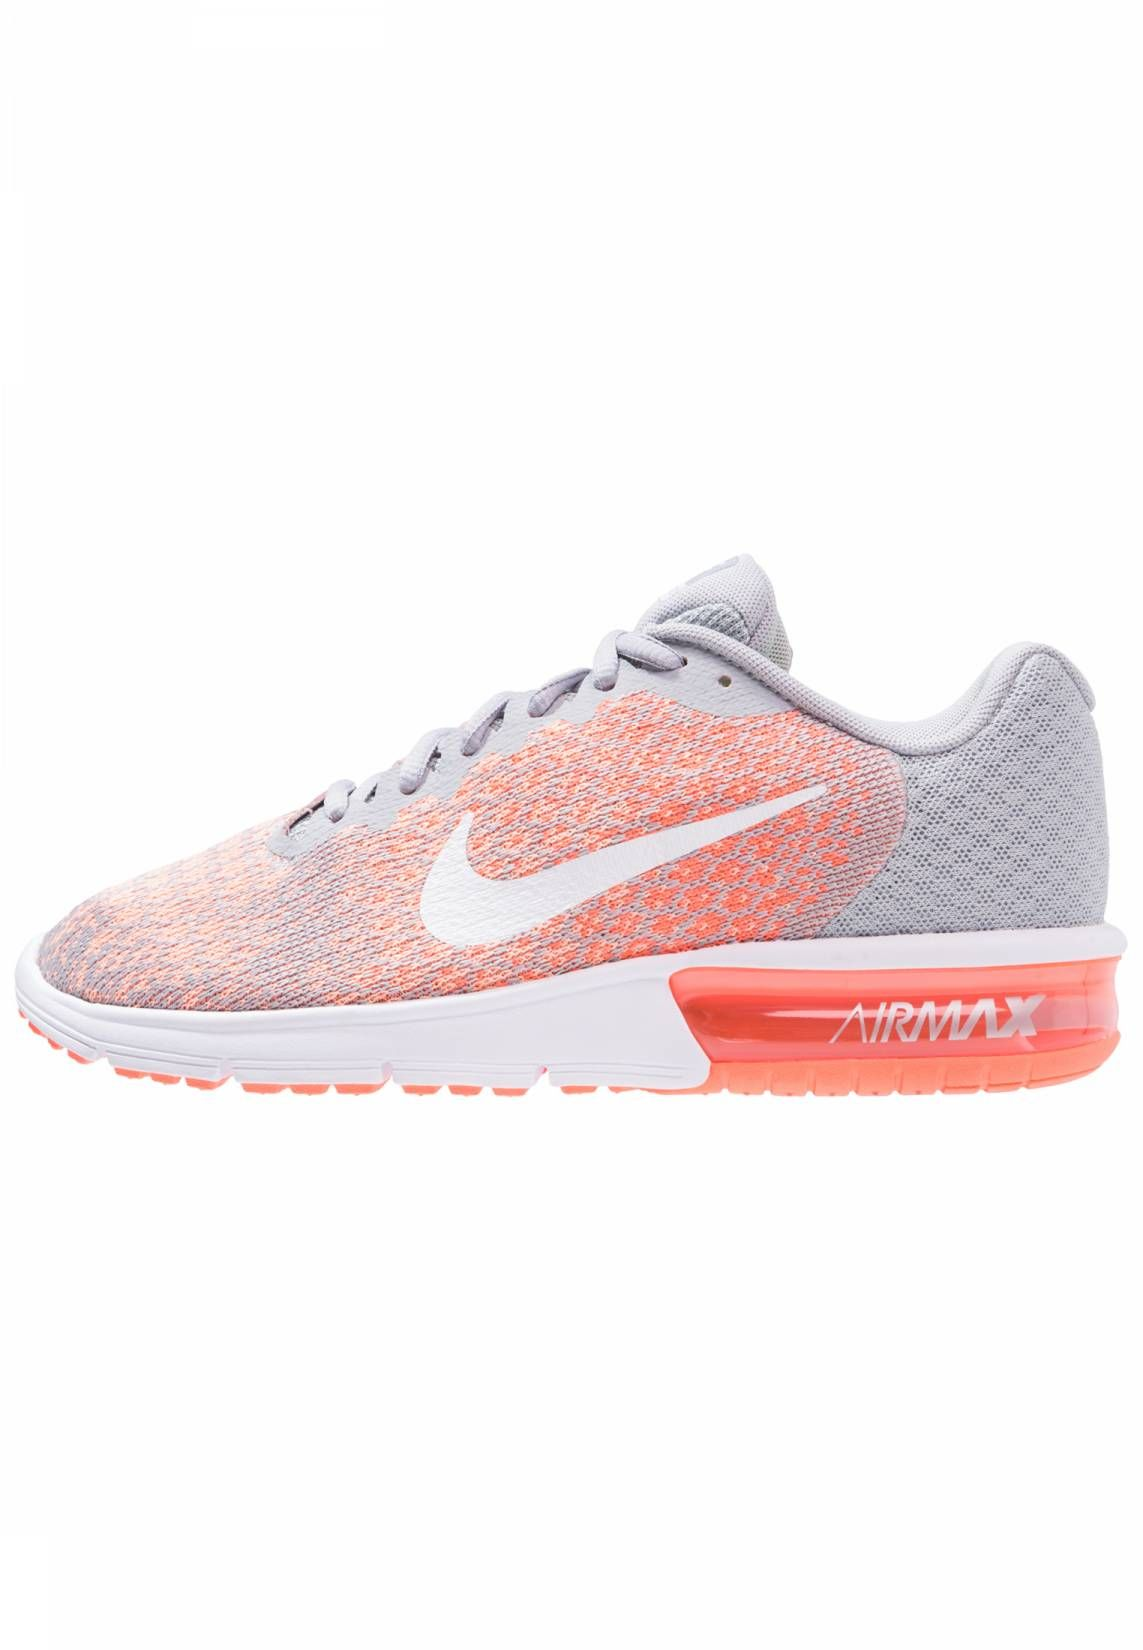 fb0a54dc6f AIR MAX SEQUENT 2 - Sneaker low - wolf grey/white/bright mango ...